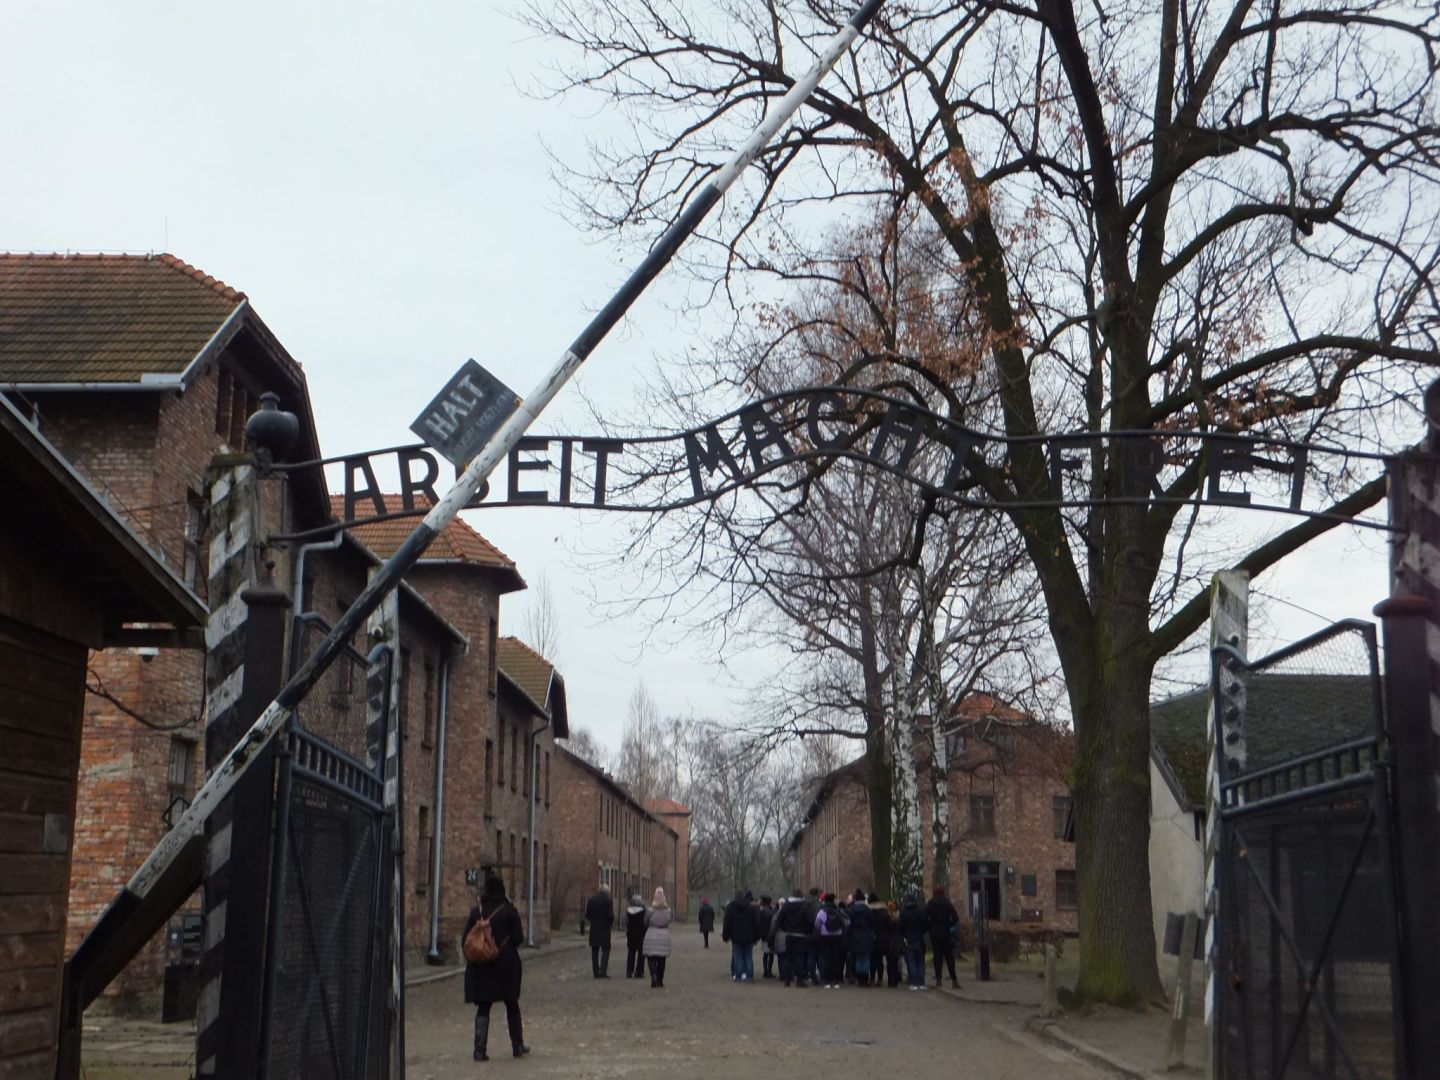 A few thoughts on Dark Tourism